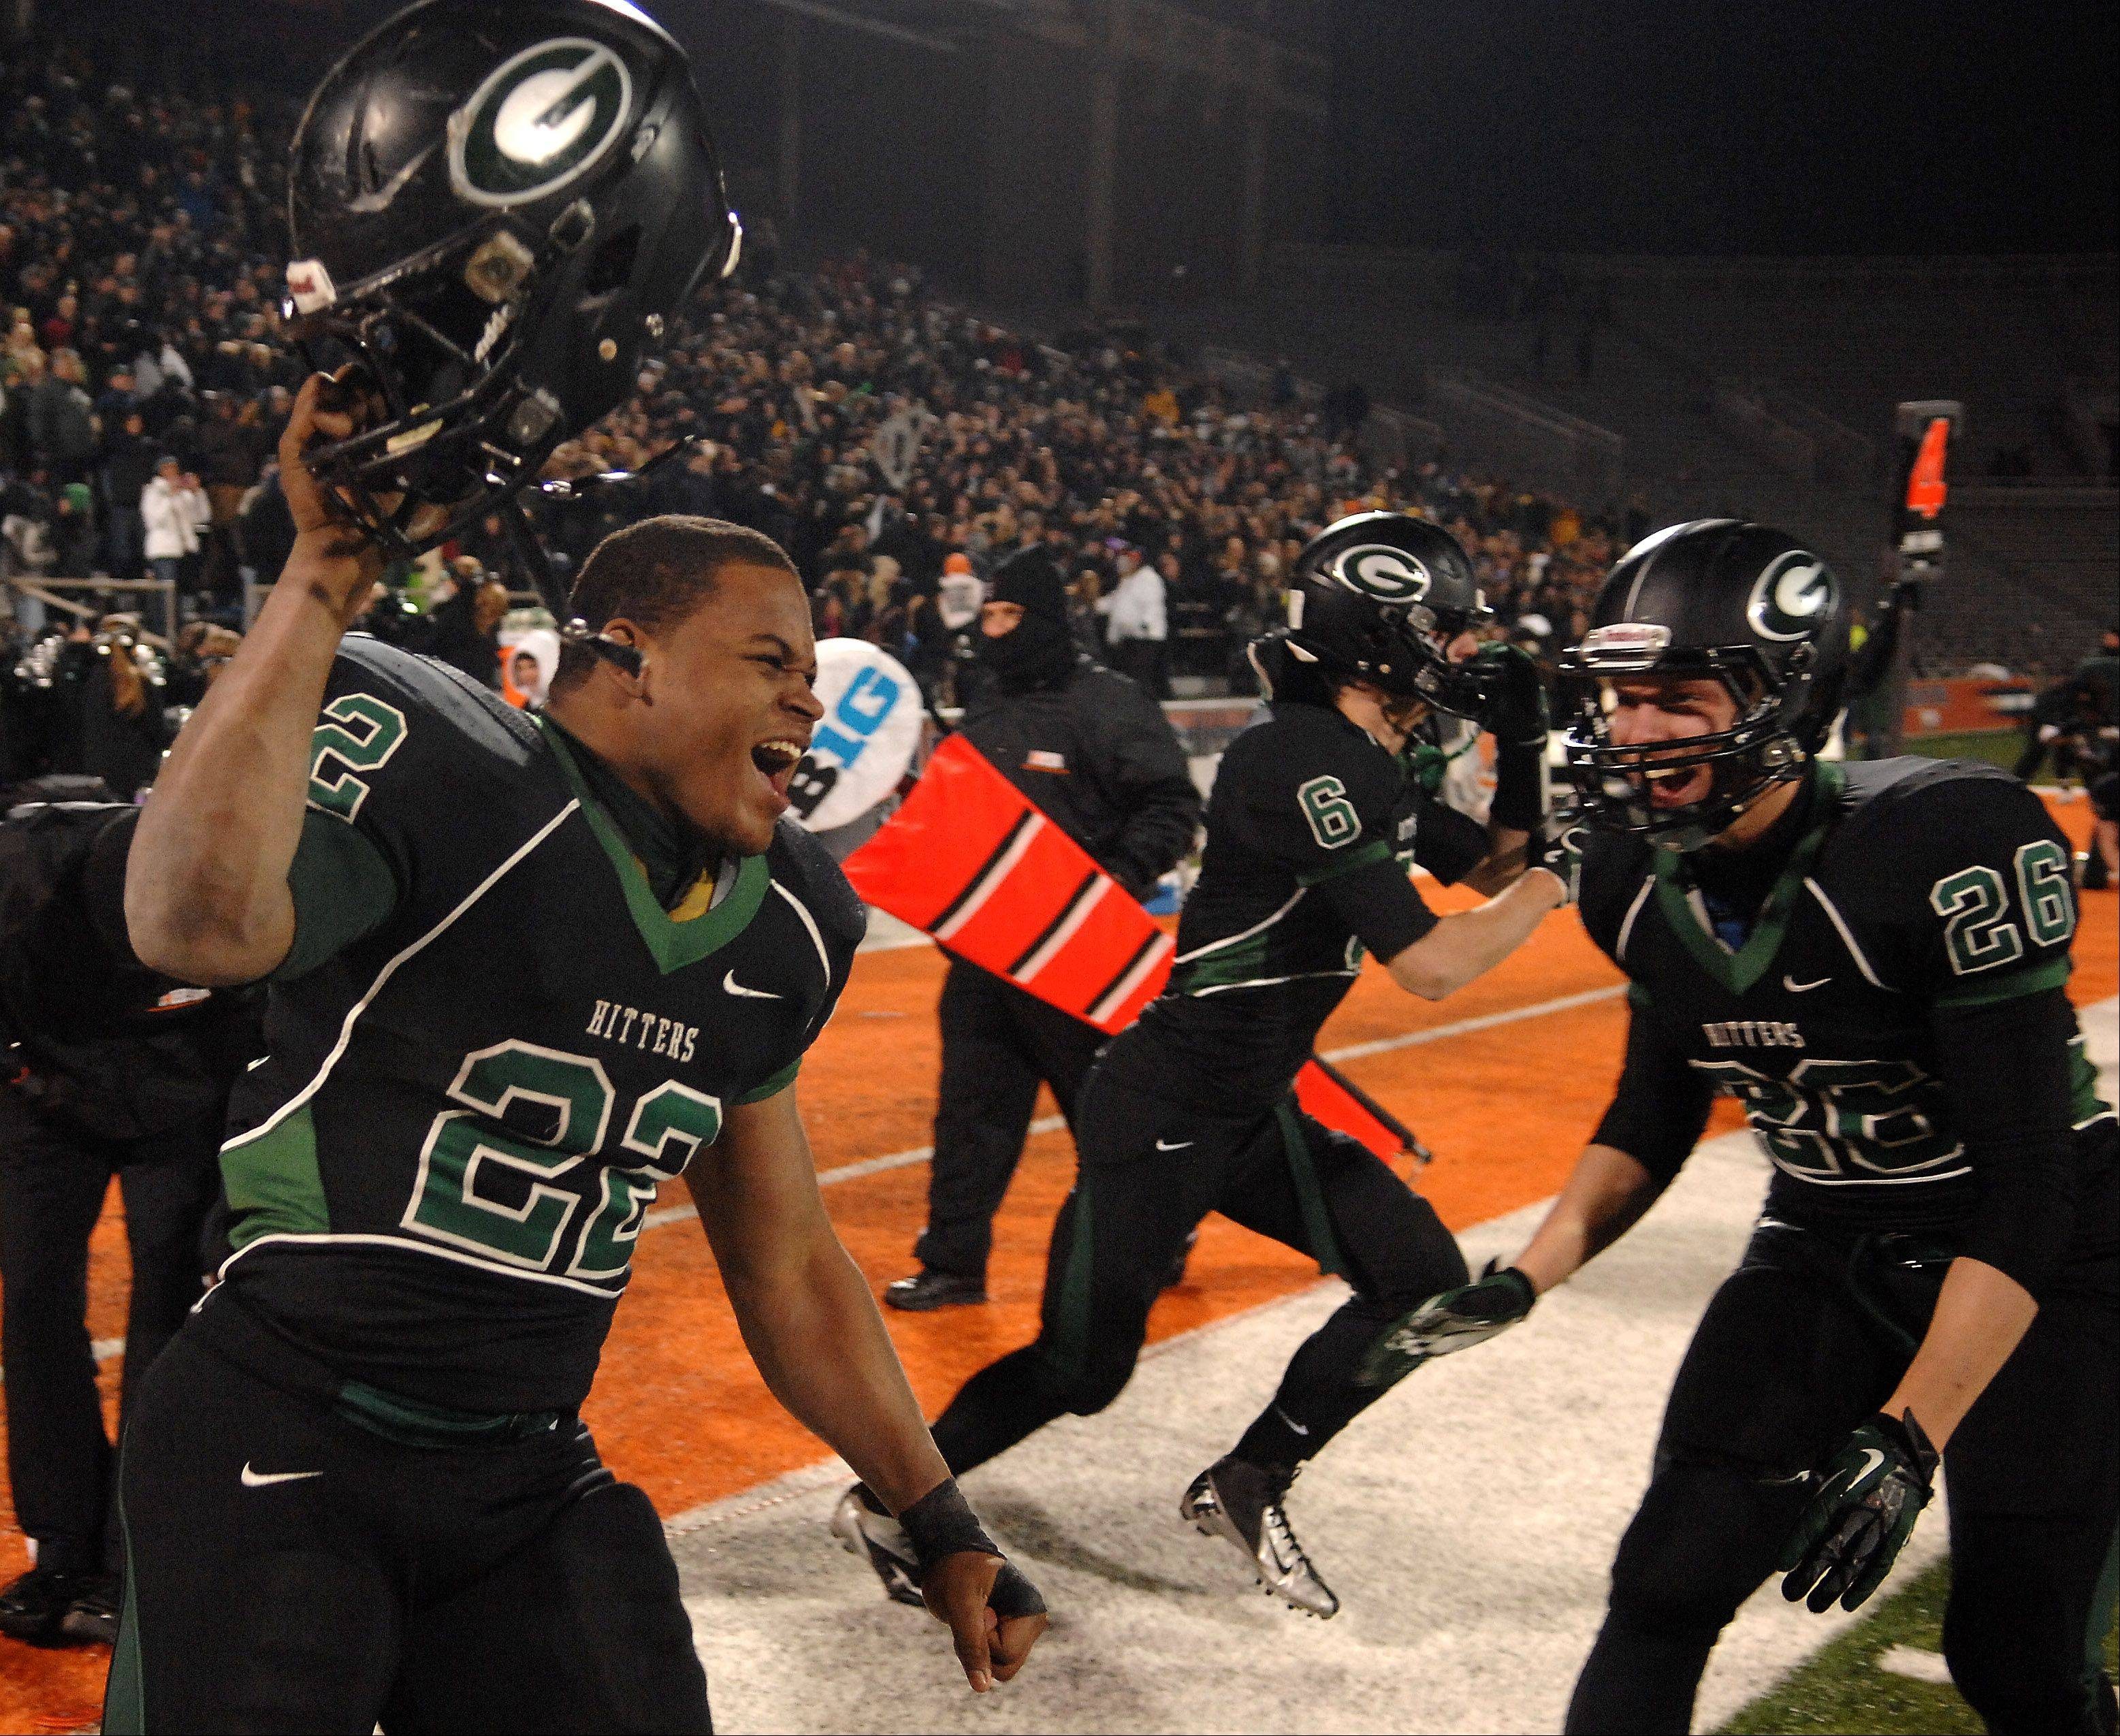 Glenbard West's Devante Toney, 22, and his teammates erupt in excitement as the defense stops Lincoln-Way East as the clock expires during Saturday's Class 7A state title game at Memorial Stadium in Champaign.